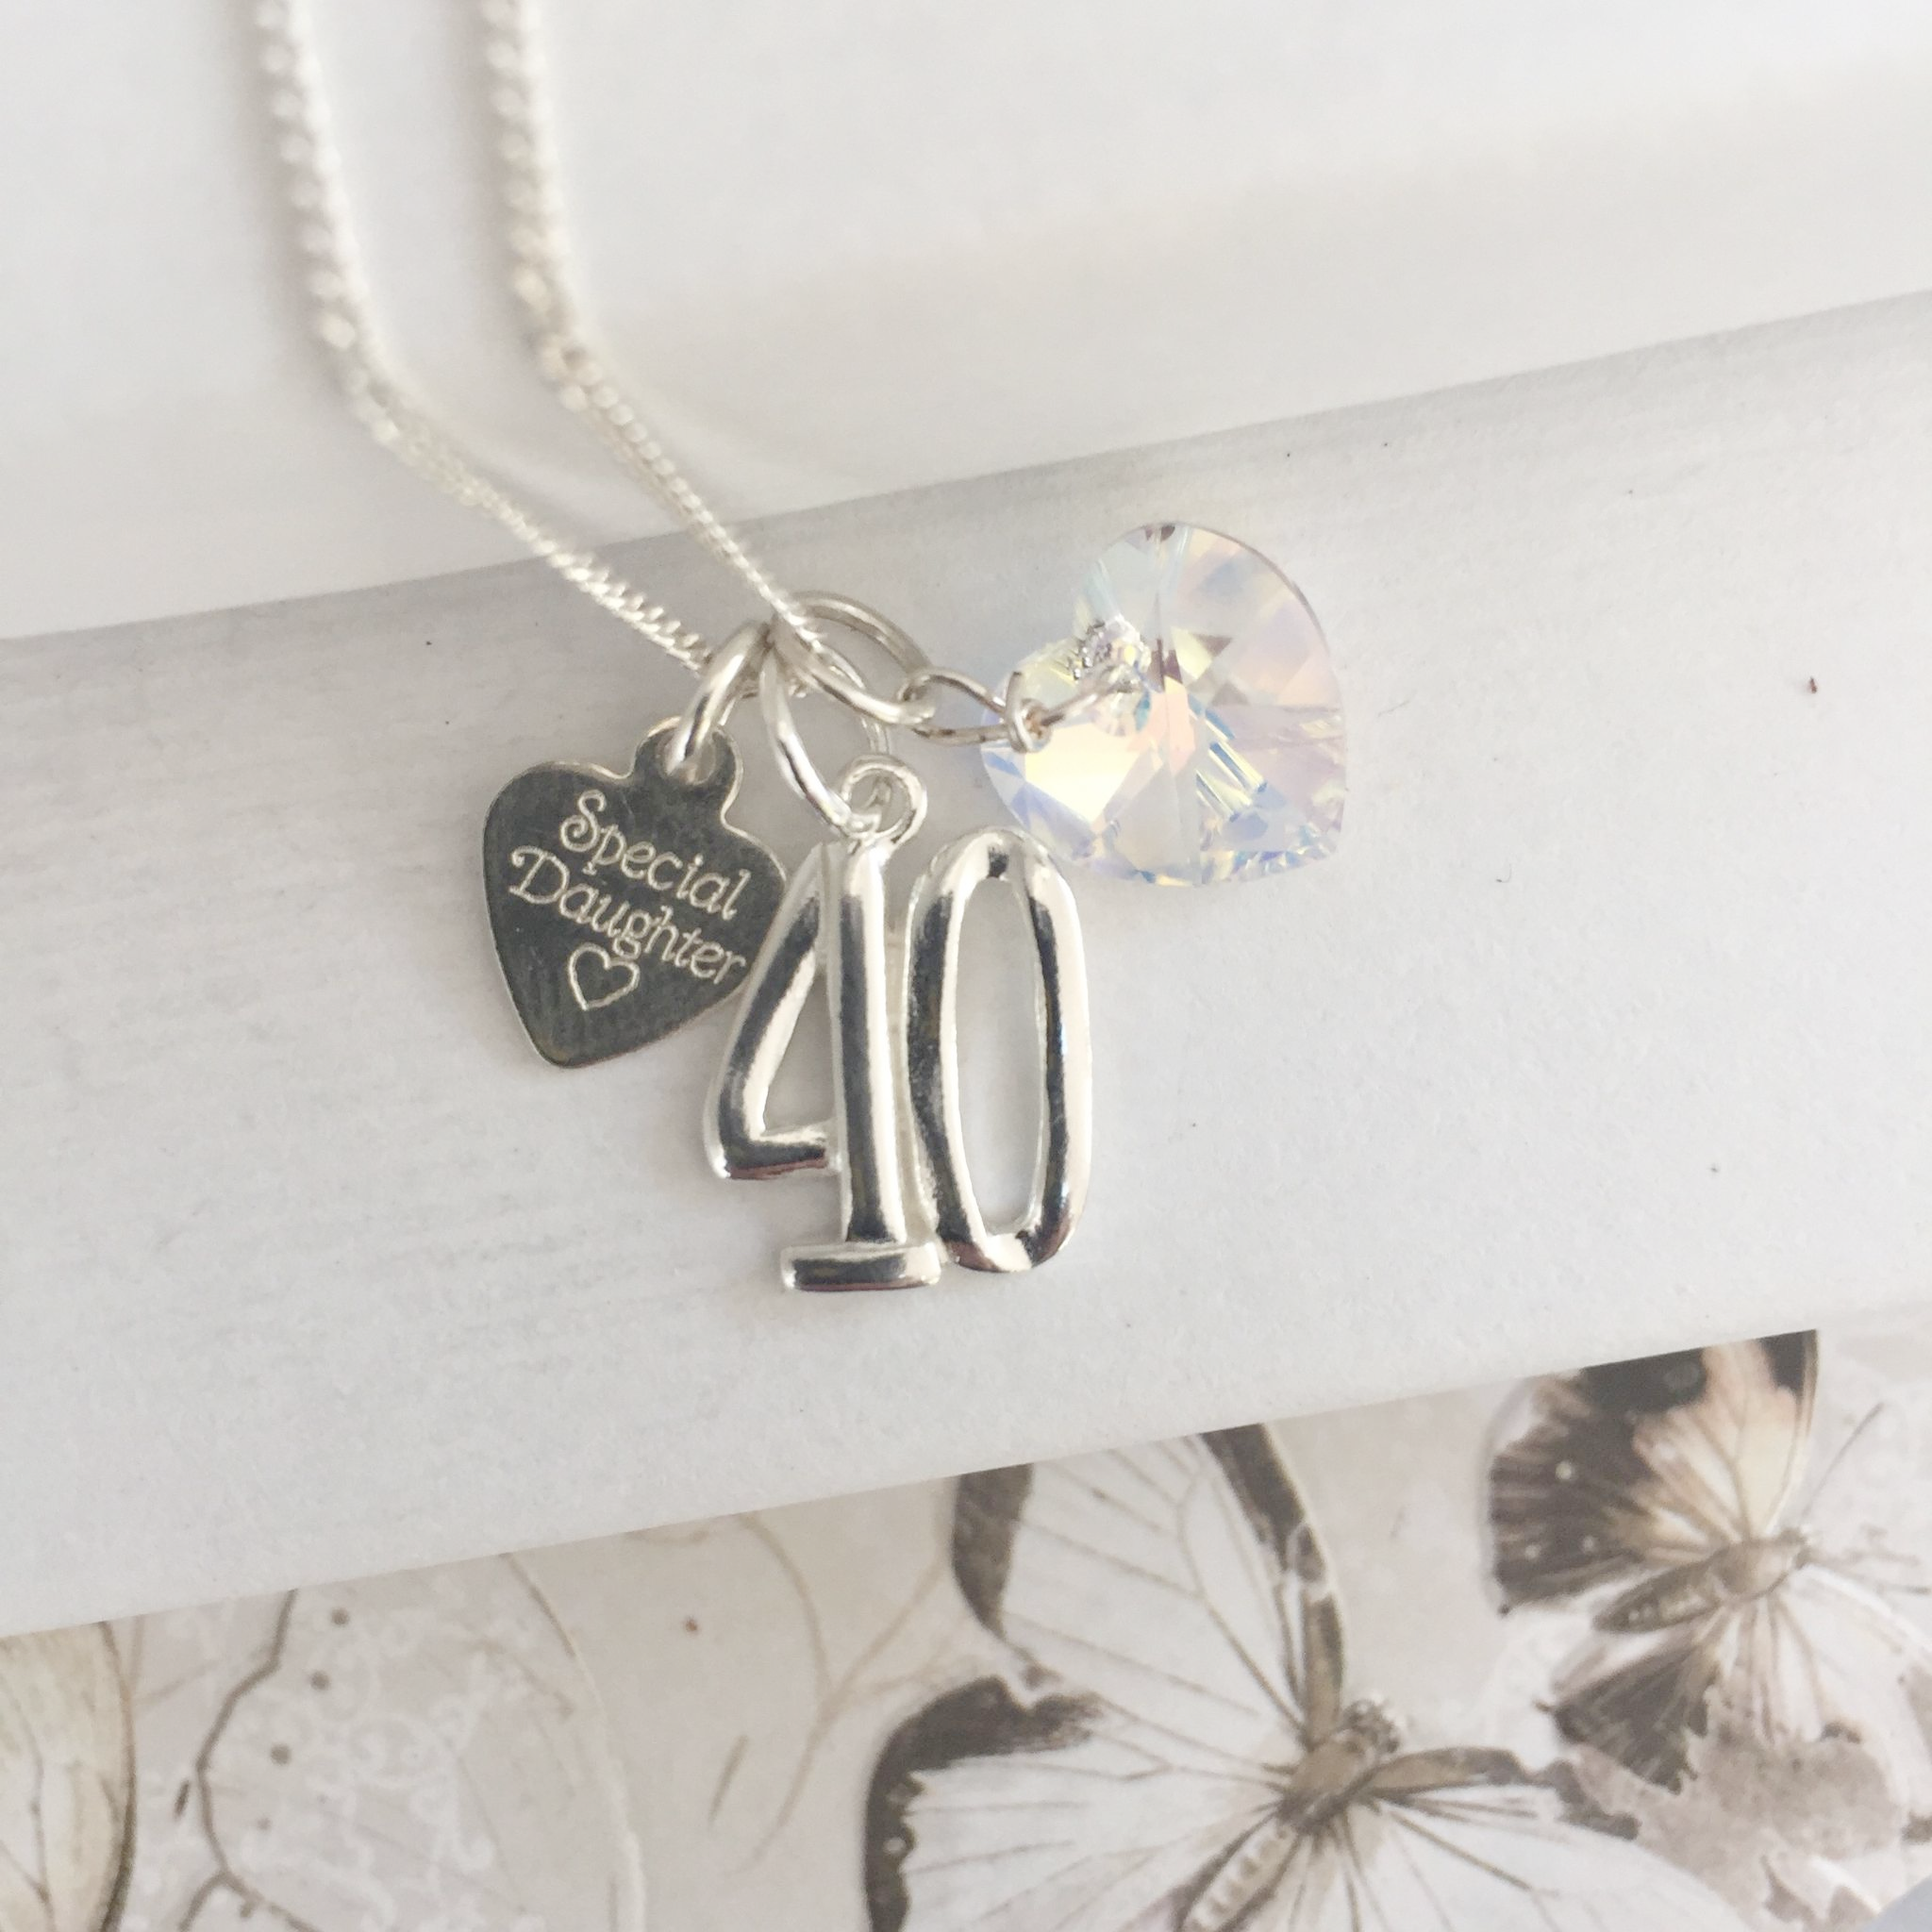 40th Birthday Gift Necklace 7929 P